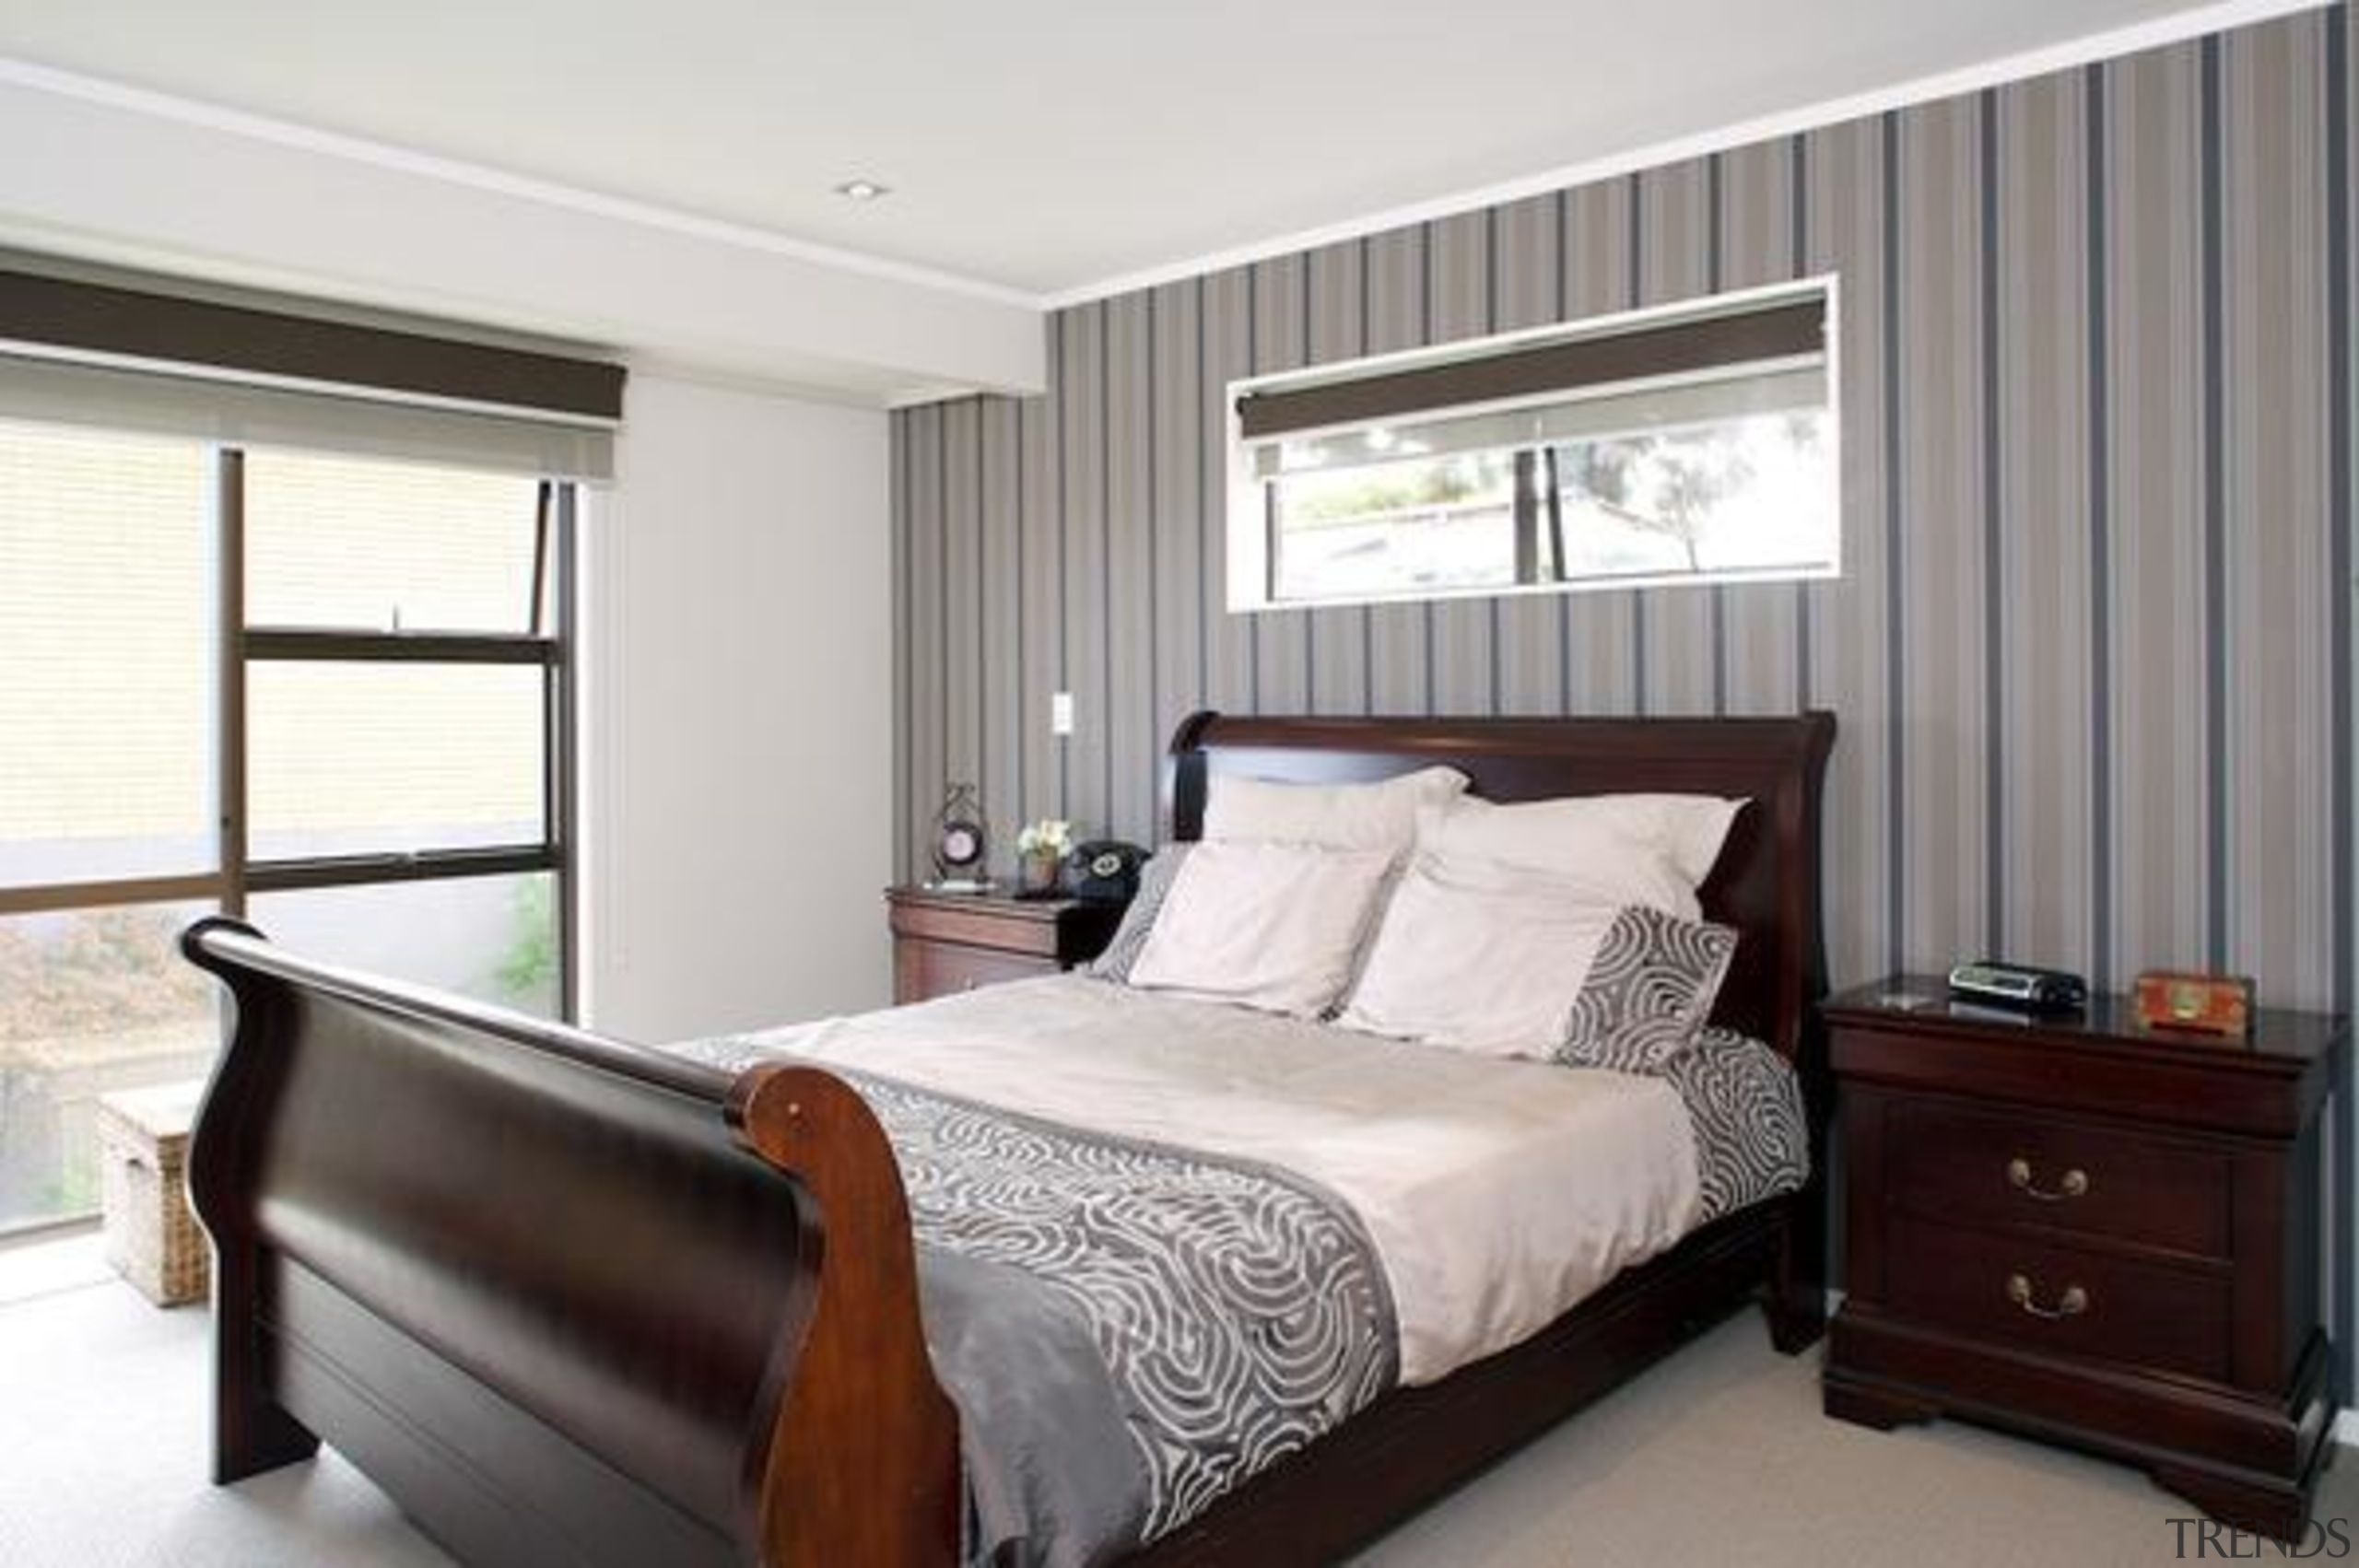 Stripes A Perennial Favourite - bed frame   bed frame, bedroom, ceiling, home, interior design, property, real estate, room, window, window covering, window treatment, white, gray